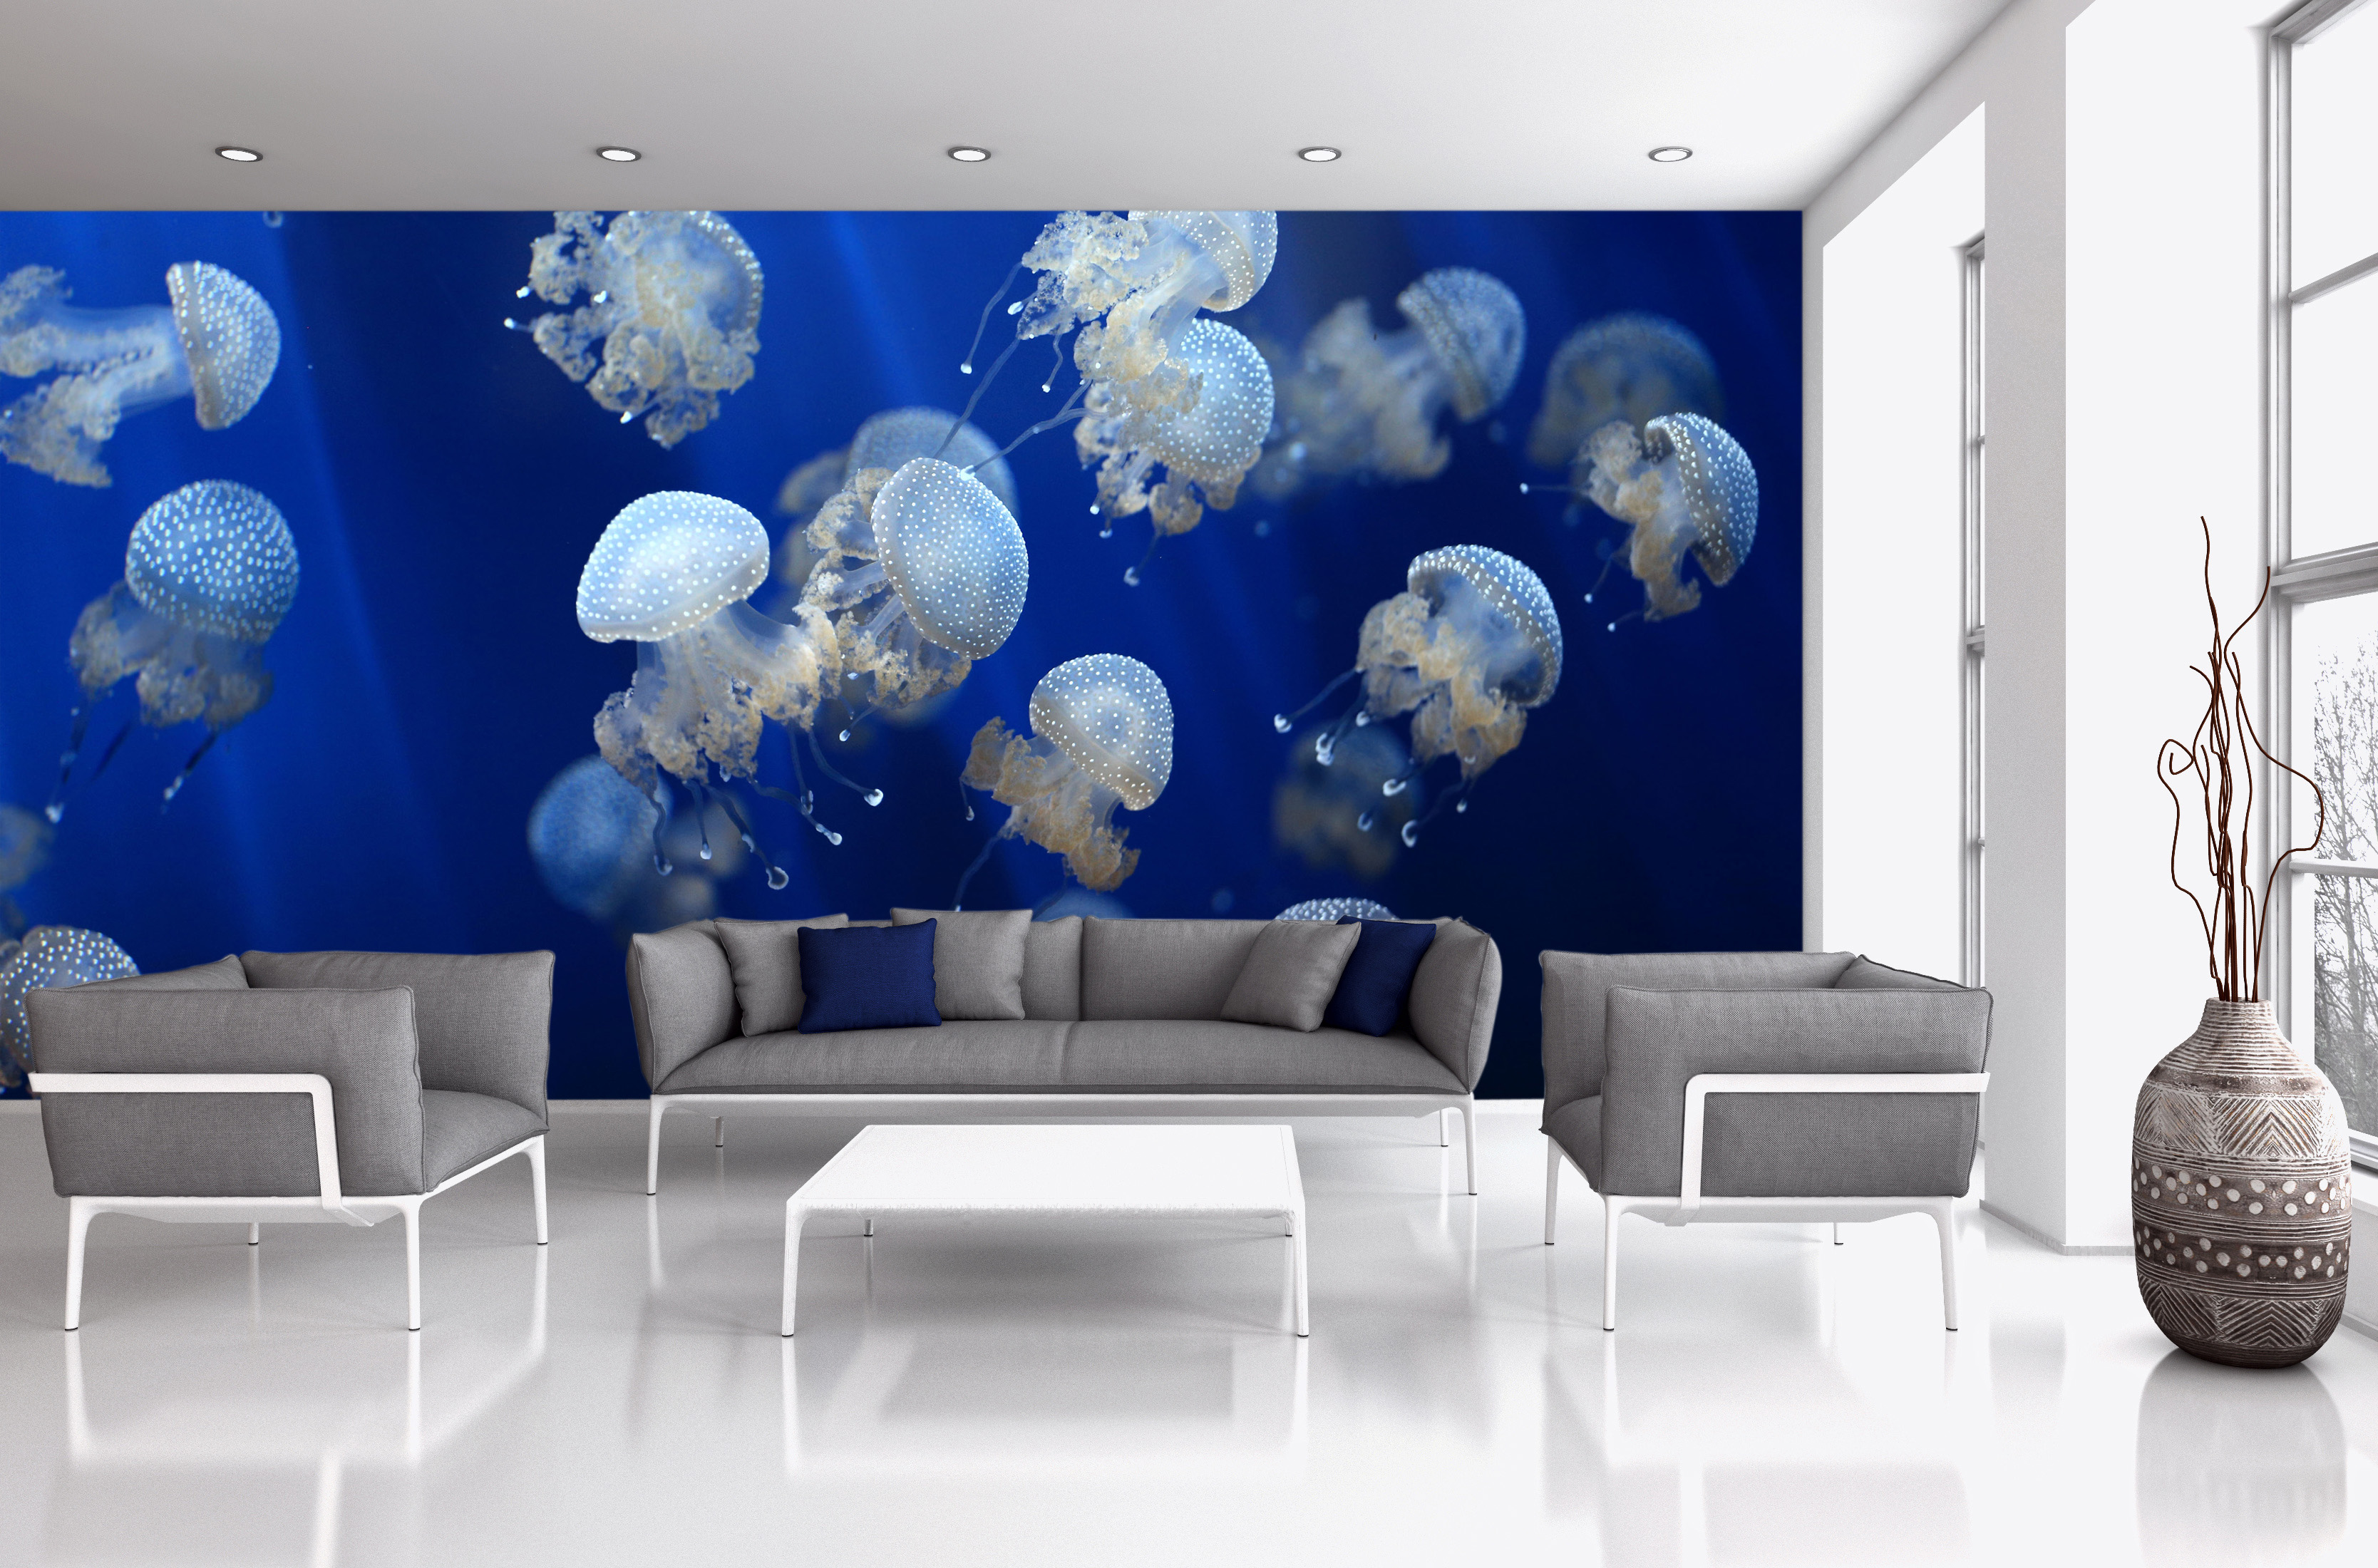 Wall Mural Ideas For Living Room Exotic Underwater Wall Mural Ideas For Your Living Rooms Mural